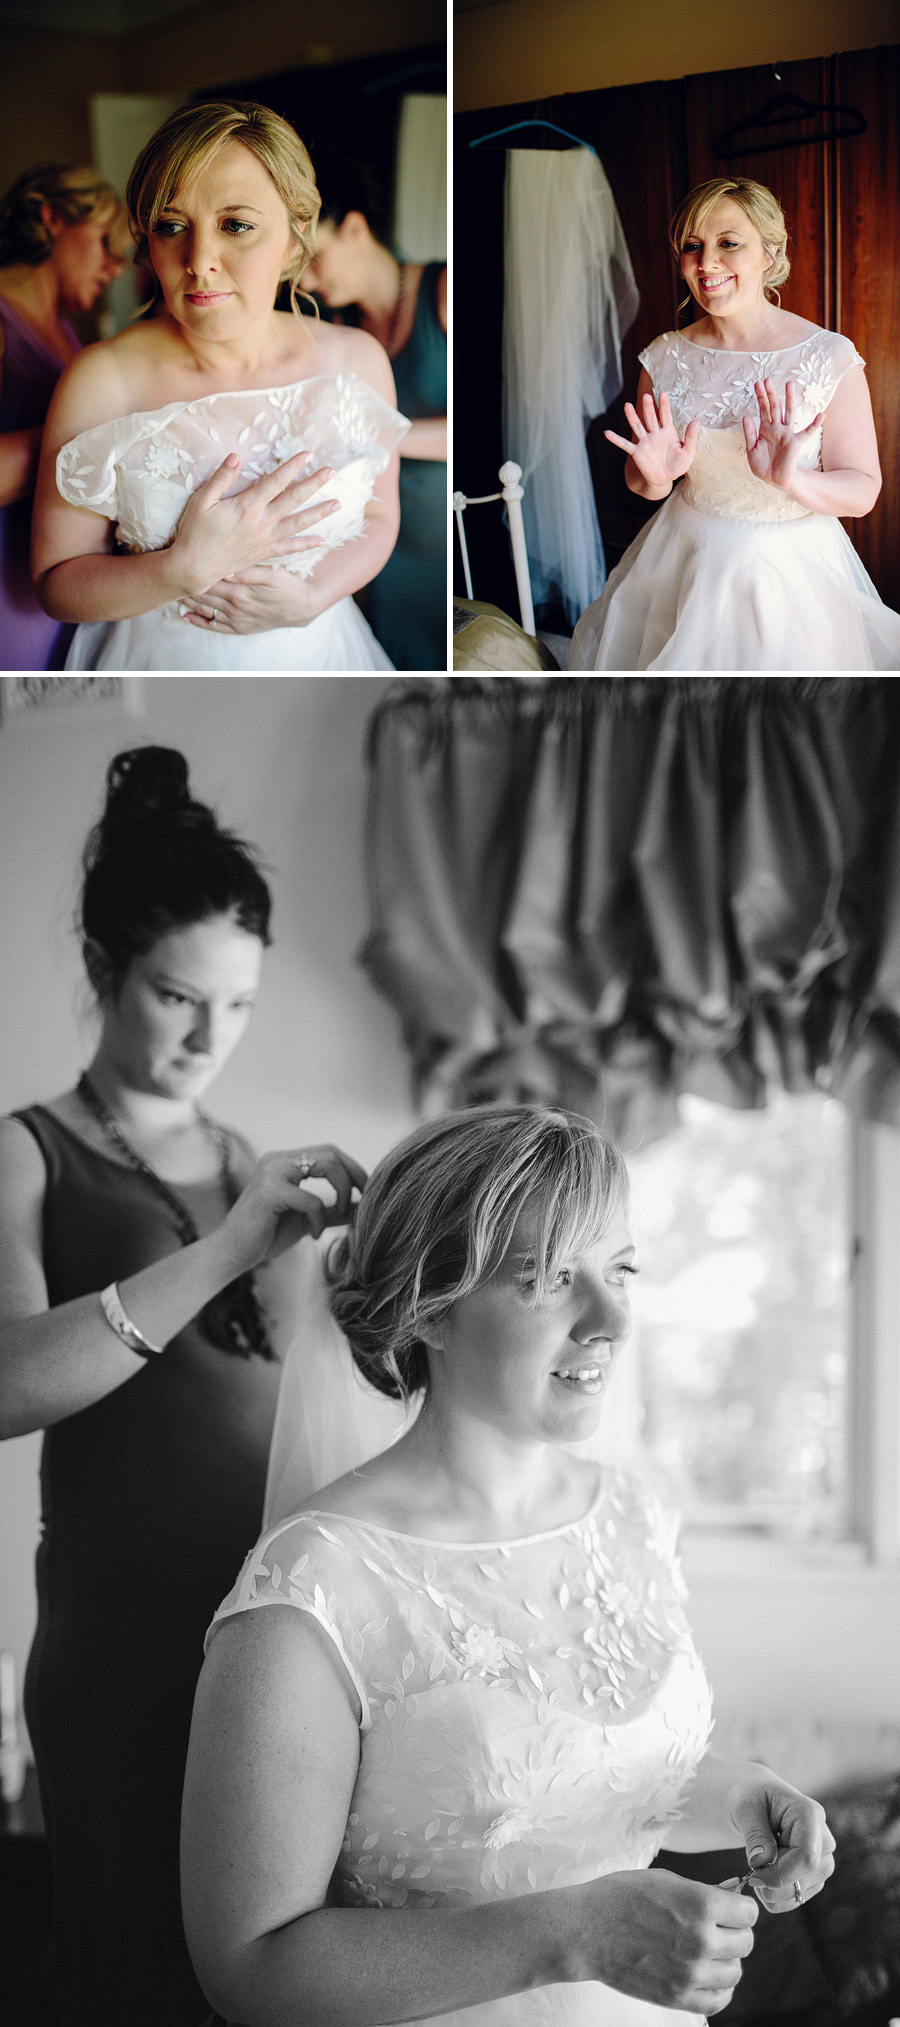 Lindfield Wedding Photographer: Bride getting ready